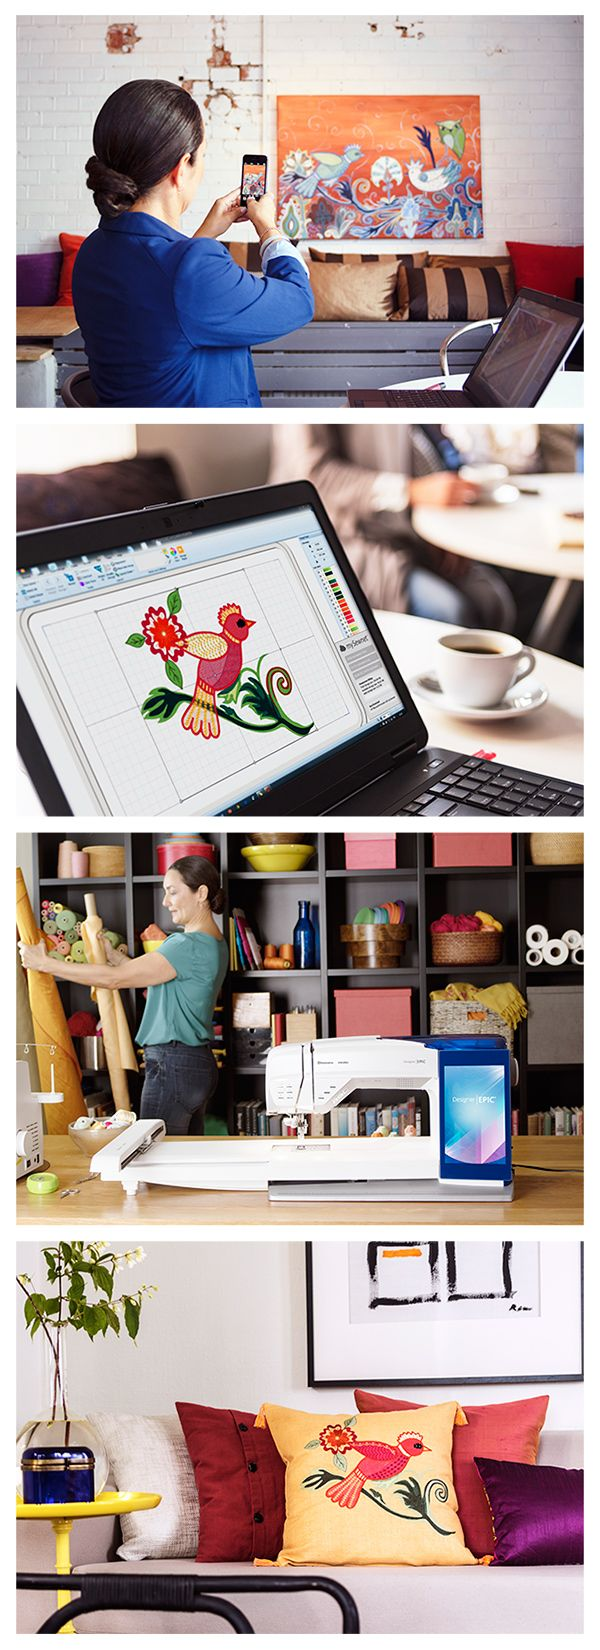 Creativity Anywhere! mySewnet™ Cloud Storage lets you create, store and access your designs from anywhere, then sync them wirelessly to your DESIGNER EPIC™ sewing and embroidery machine!